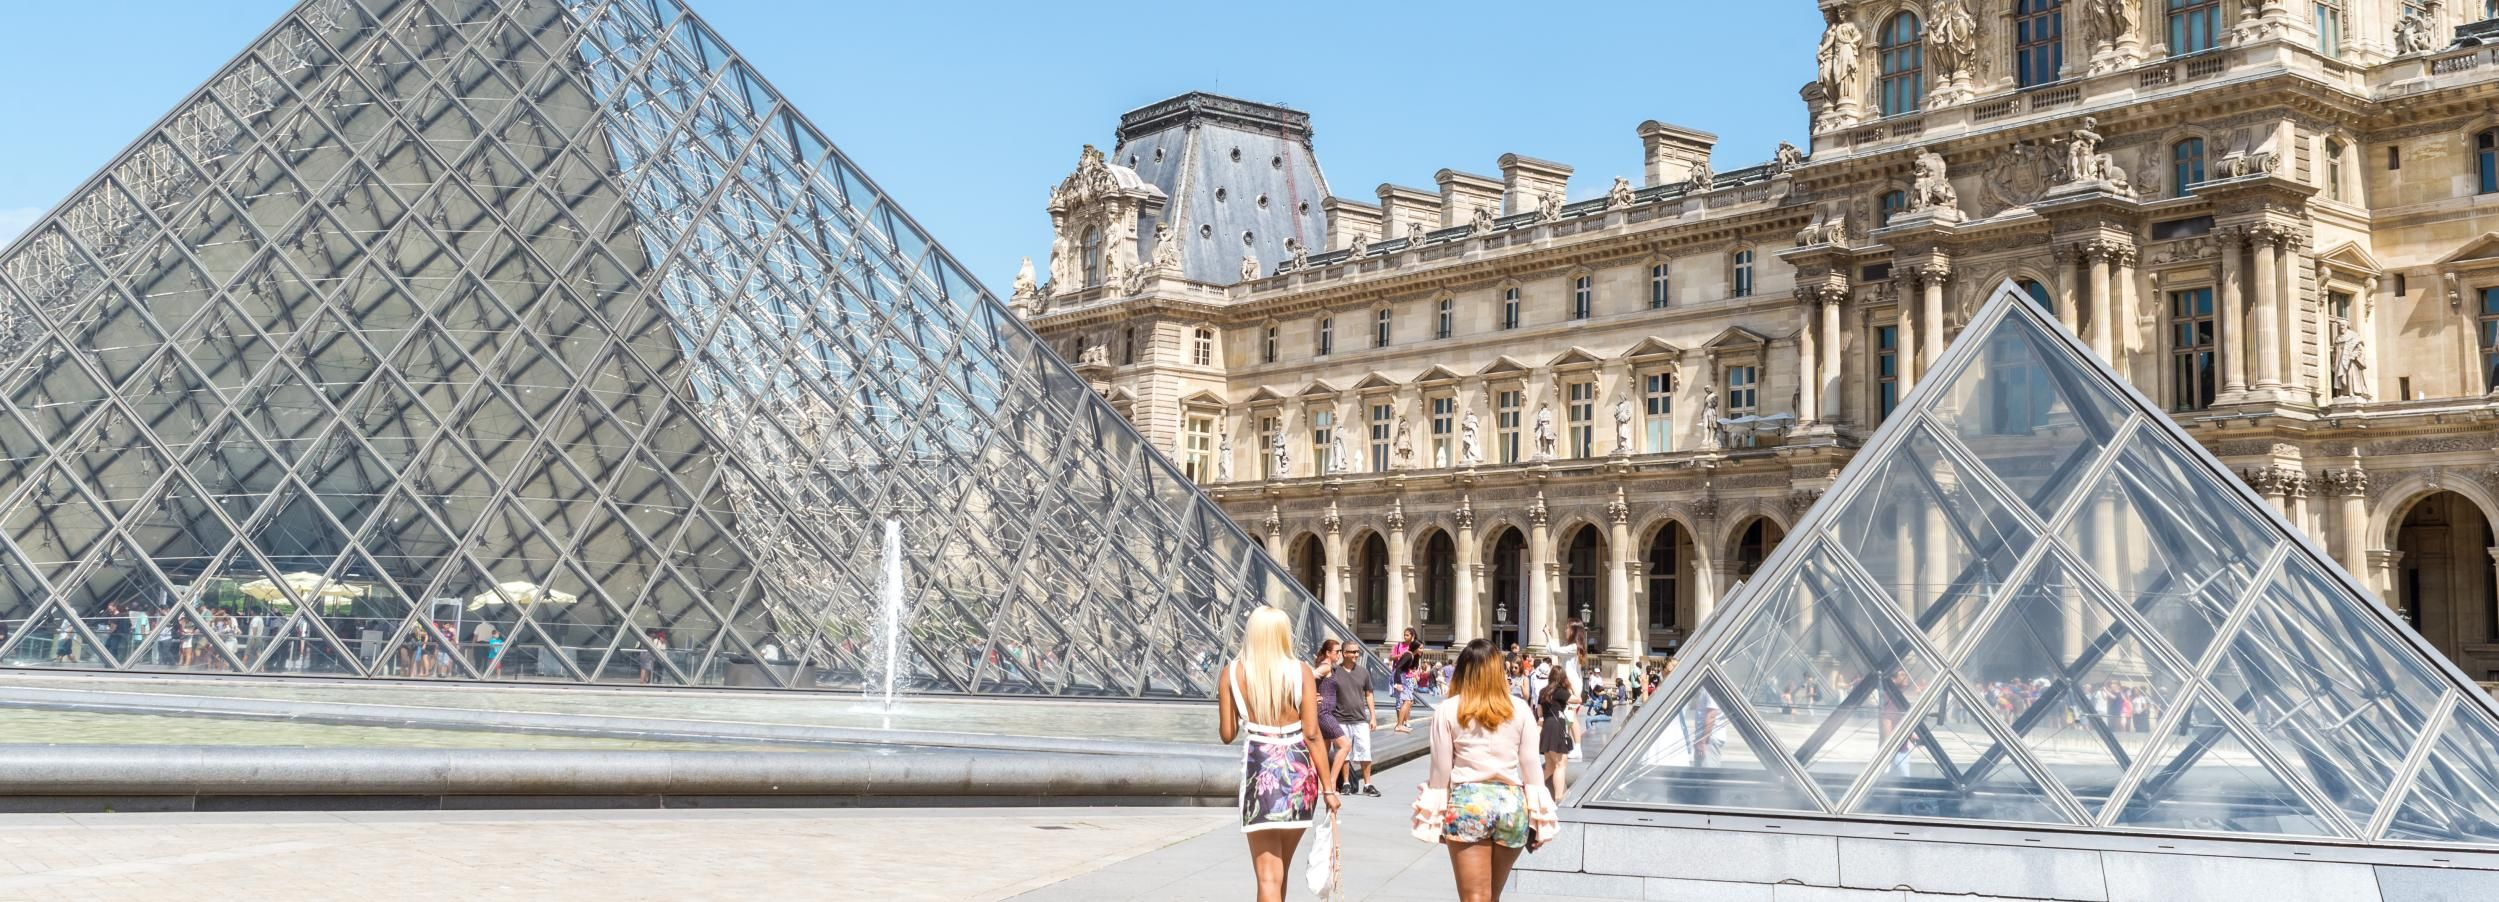 Louvre Museum: Guided Tour with Optional Ticket